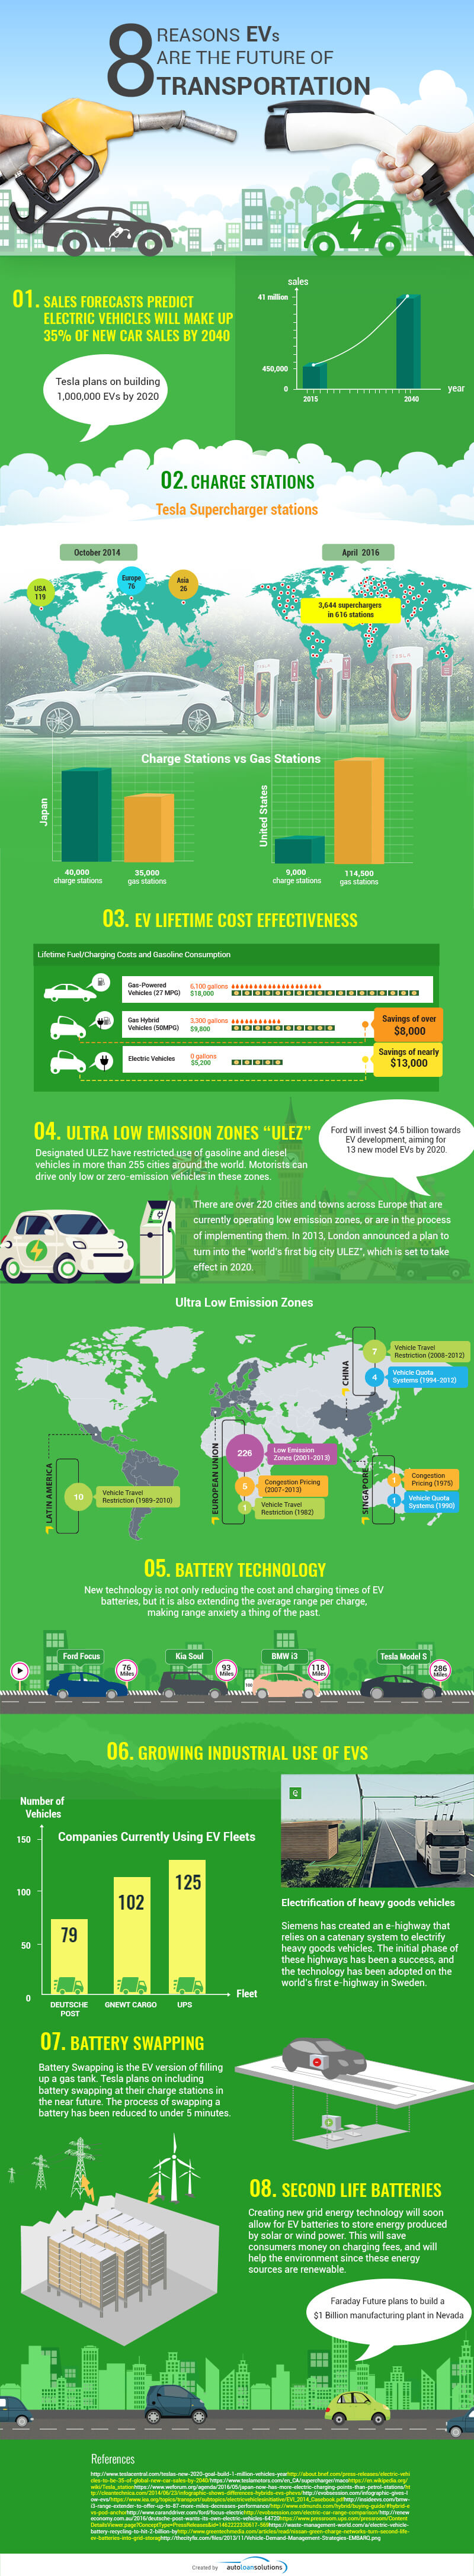 why-electric-vehicles-are-the-future-infographic-plaza